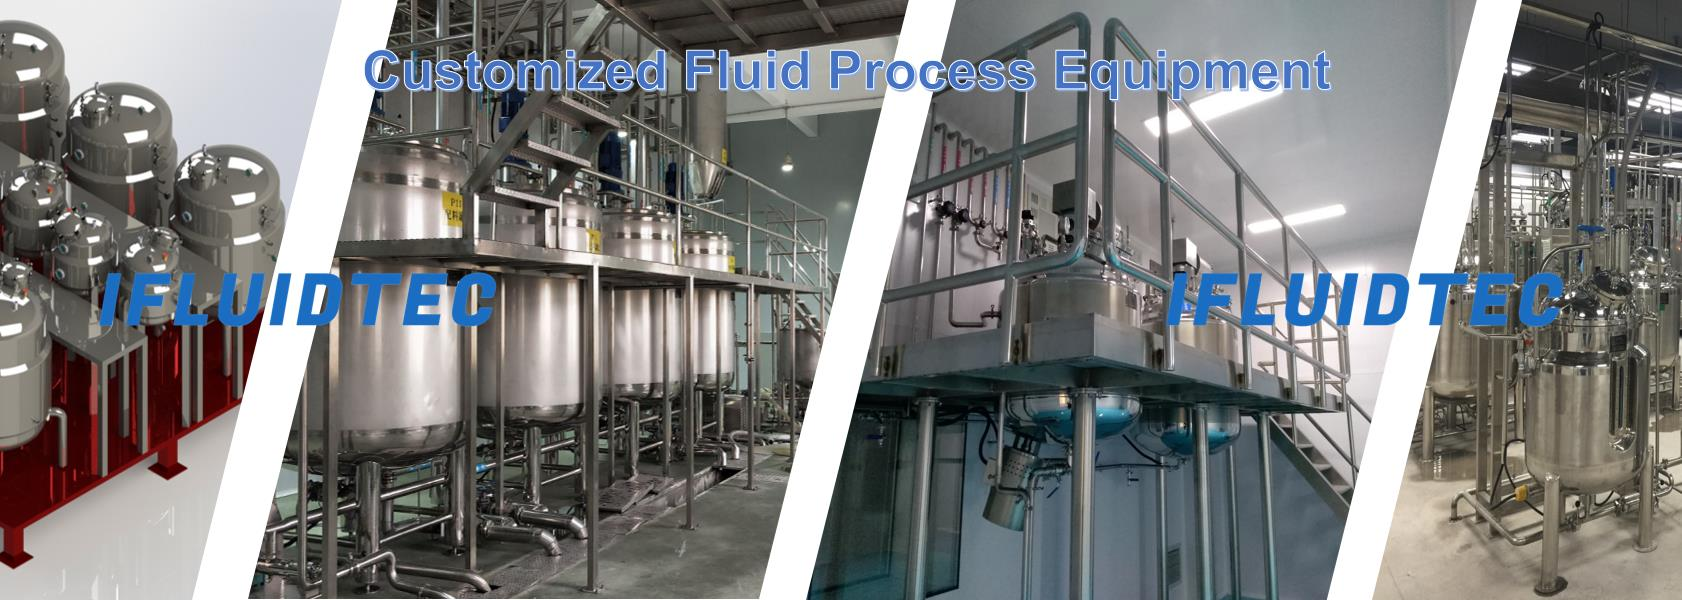 customized-fluid-process-equipment-ifluidtec